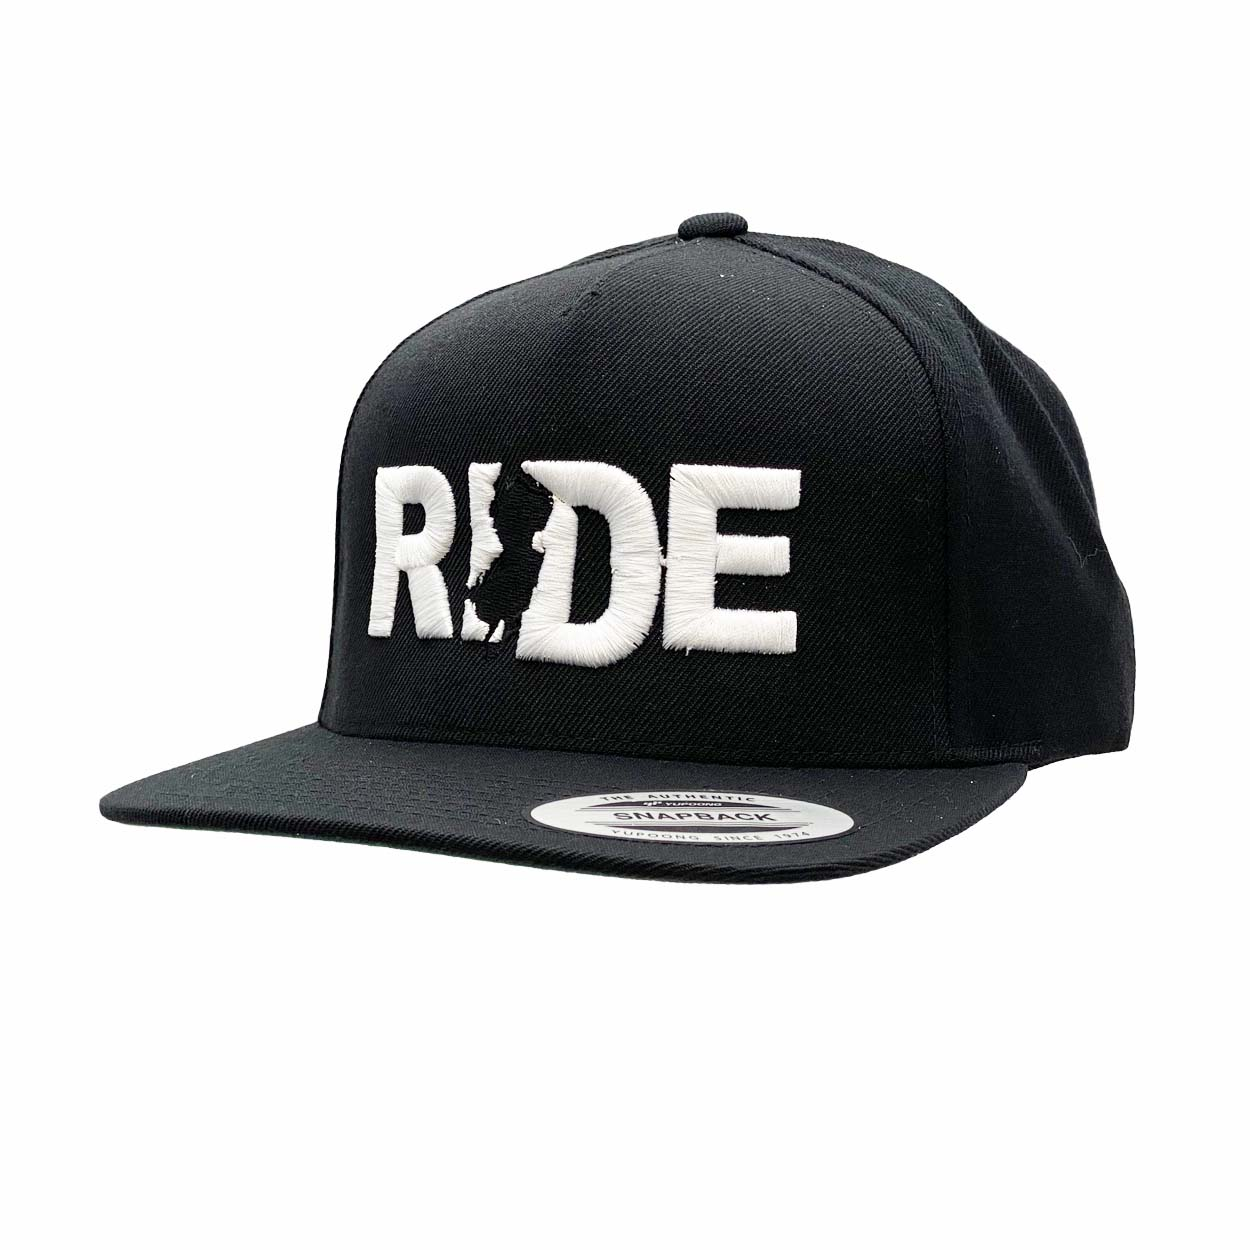 Ride New Jersey Classic Embroidered  Snapback Flat Brim Hat Black/White